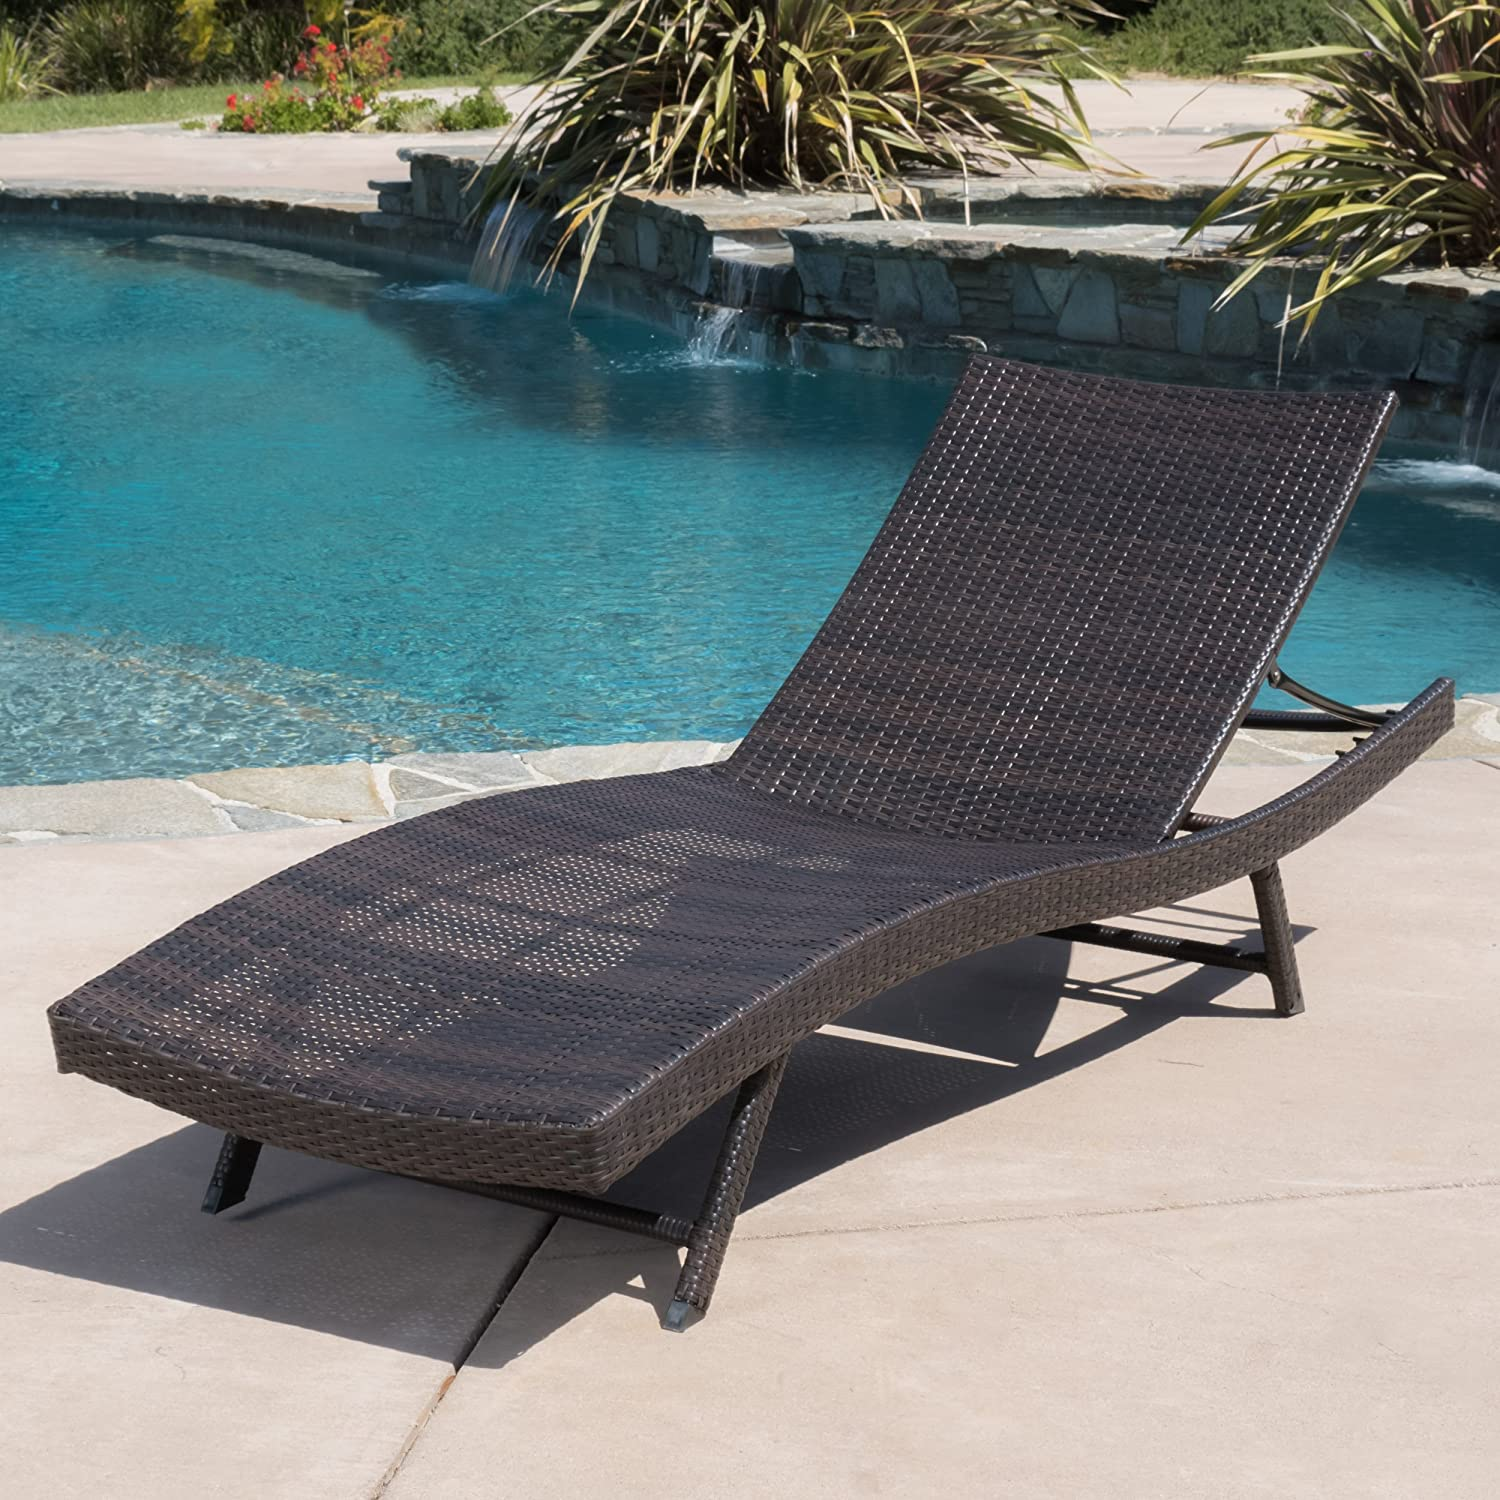 PATIORAMA Outdoor Adjustable Pool Rattan Chaise Lounge Chair with Steel Frame Patio Furniture, Espresso Brown PE Wicker